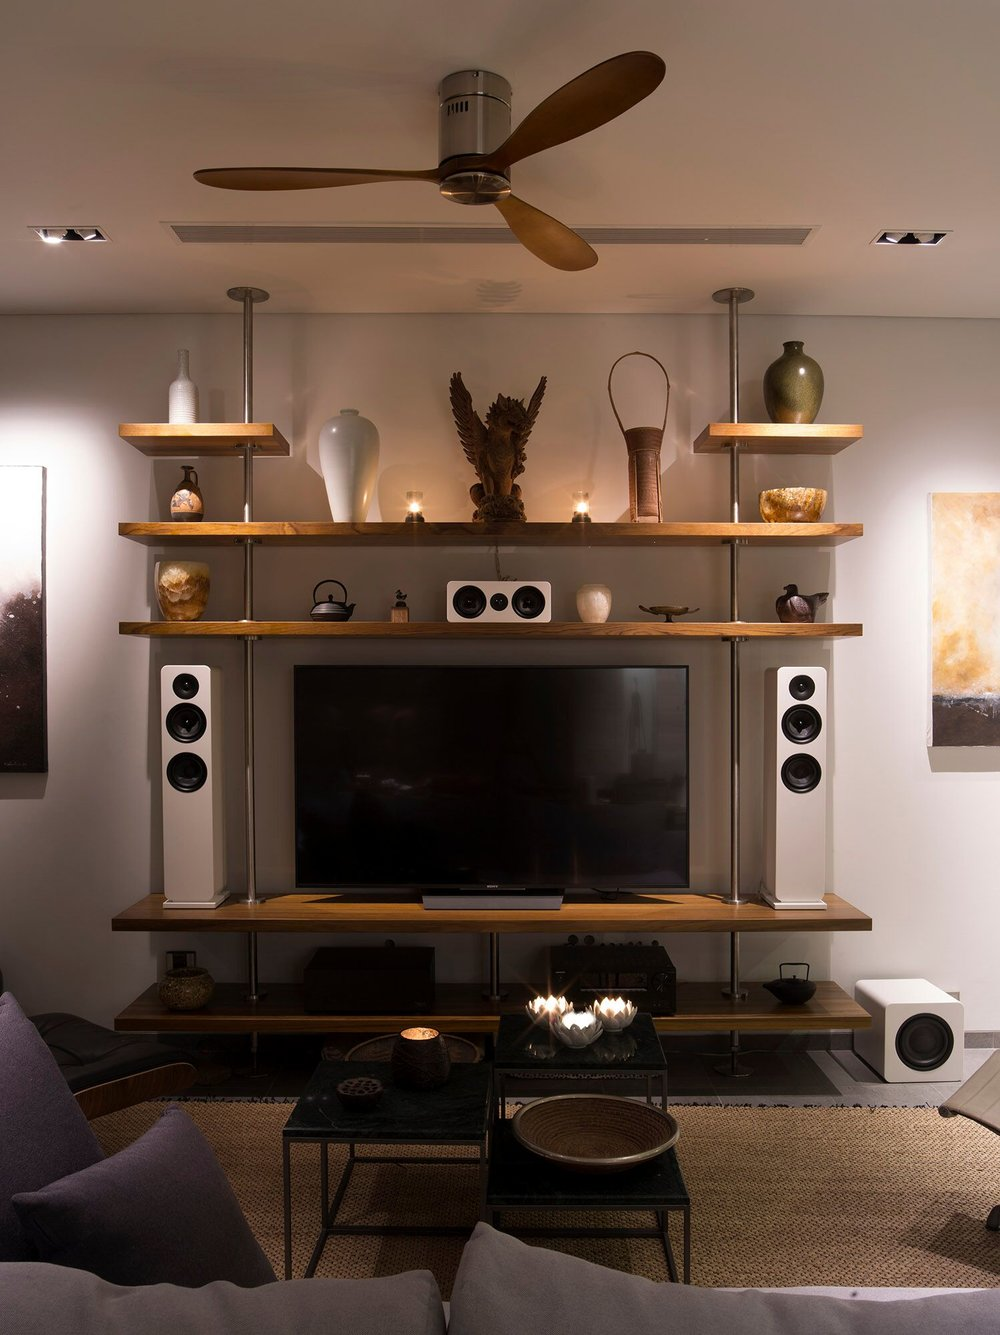 Roth Oli speakers installed in front left, centre, right and sub configuration.